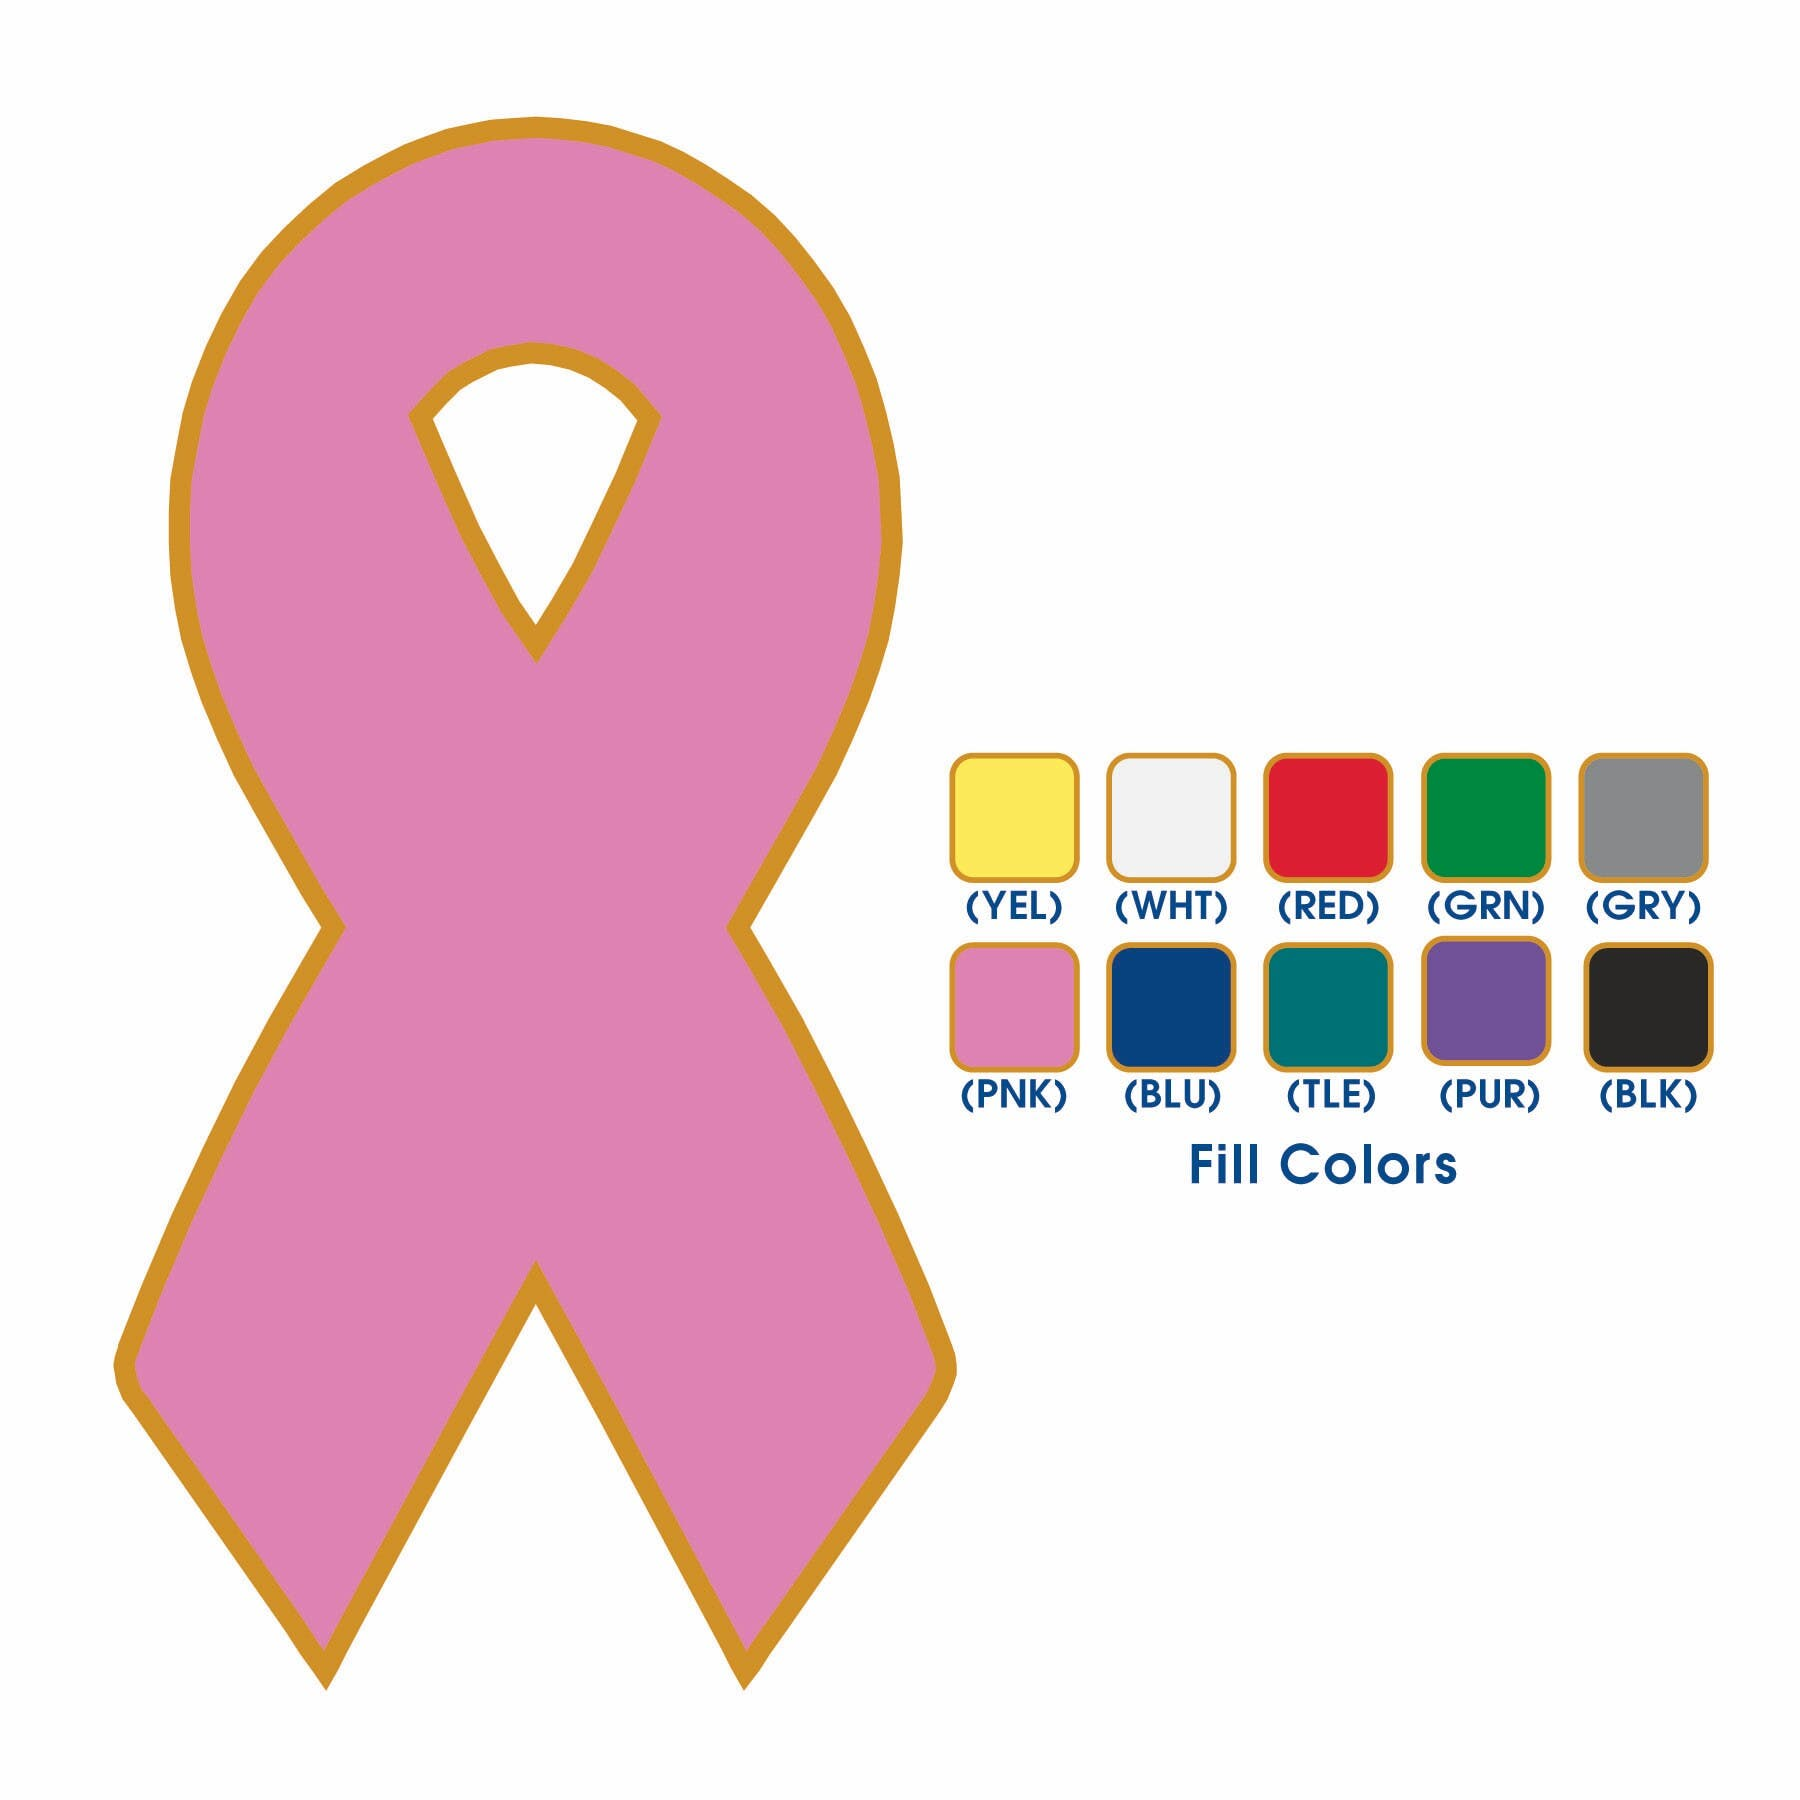 Awareness Ribbon Lapel Pin (Item # DJMJQ-HNUBJ) Lapel pin sold by InkEasy